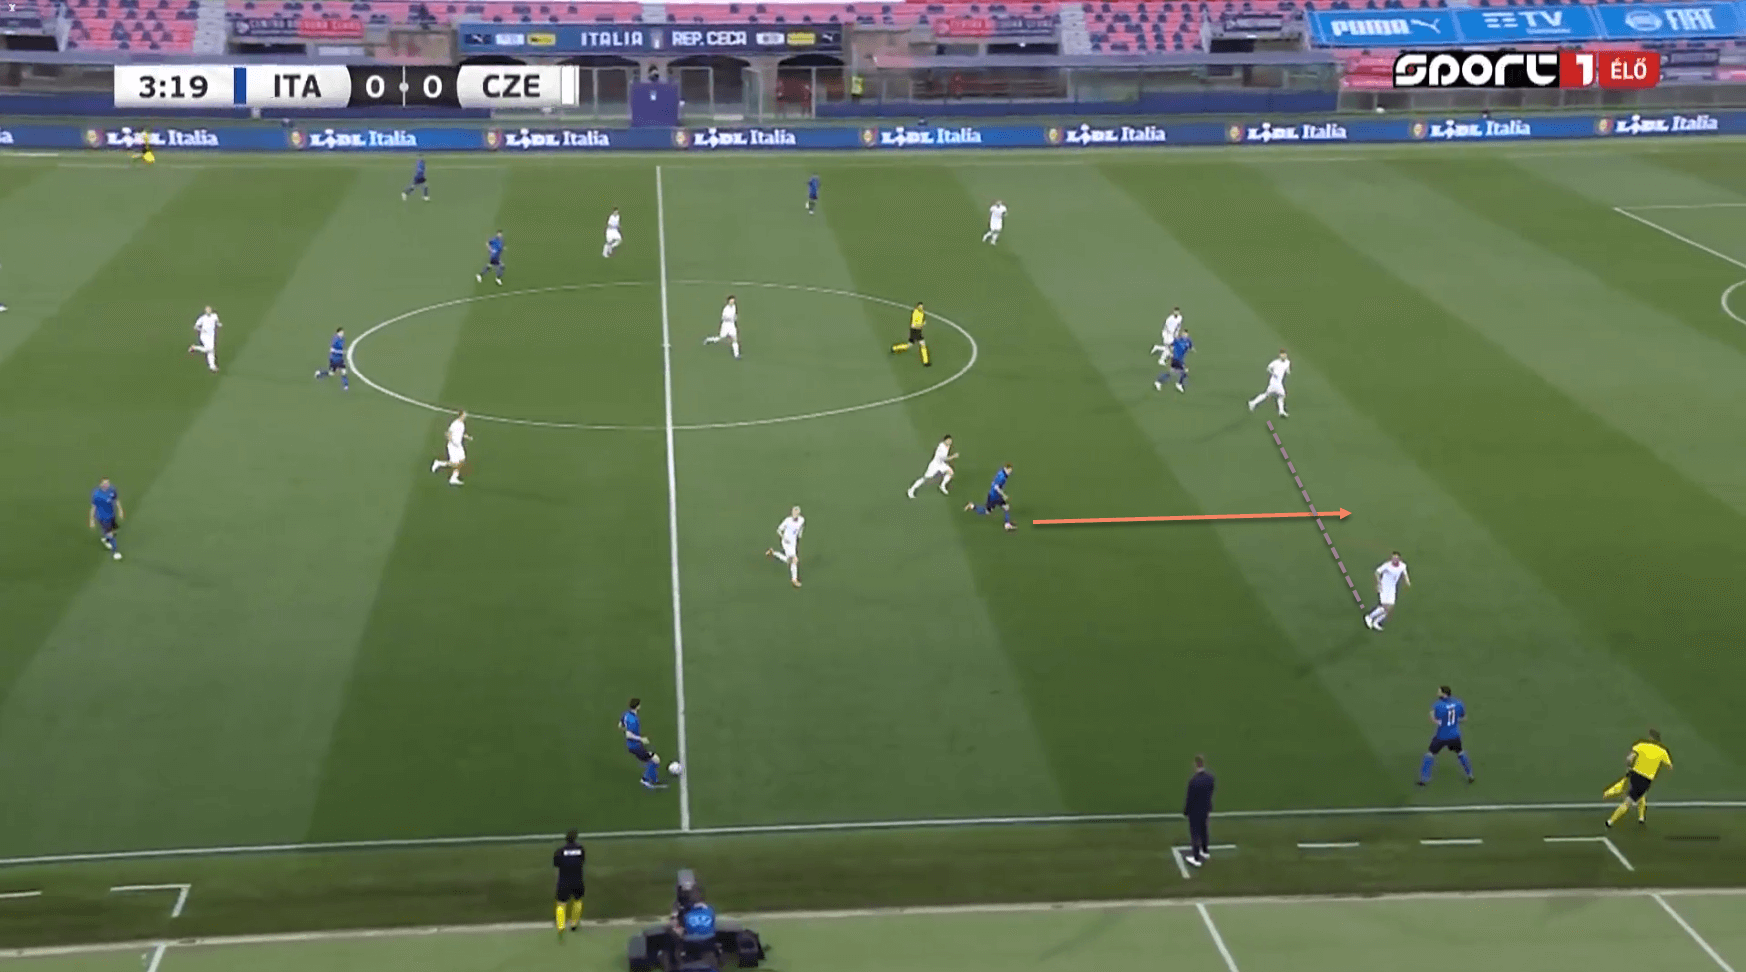 Turkey Italy EURO 2020 tactical preview analysis